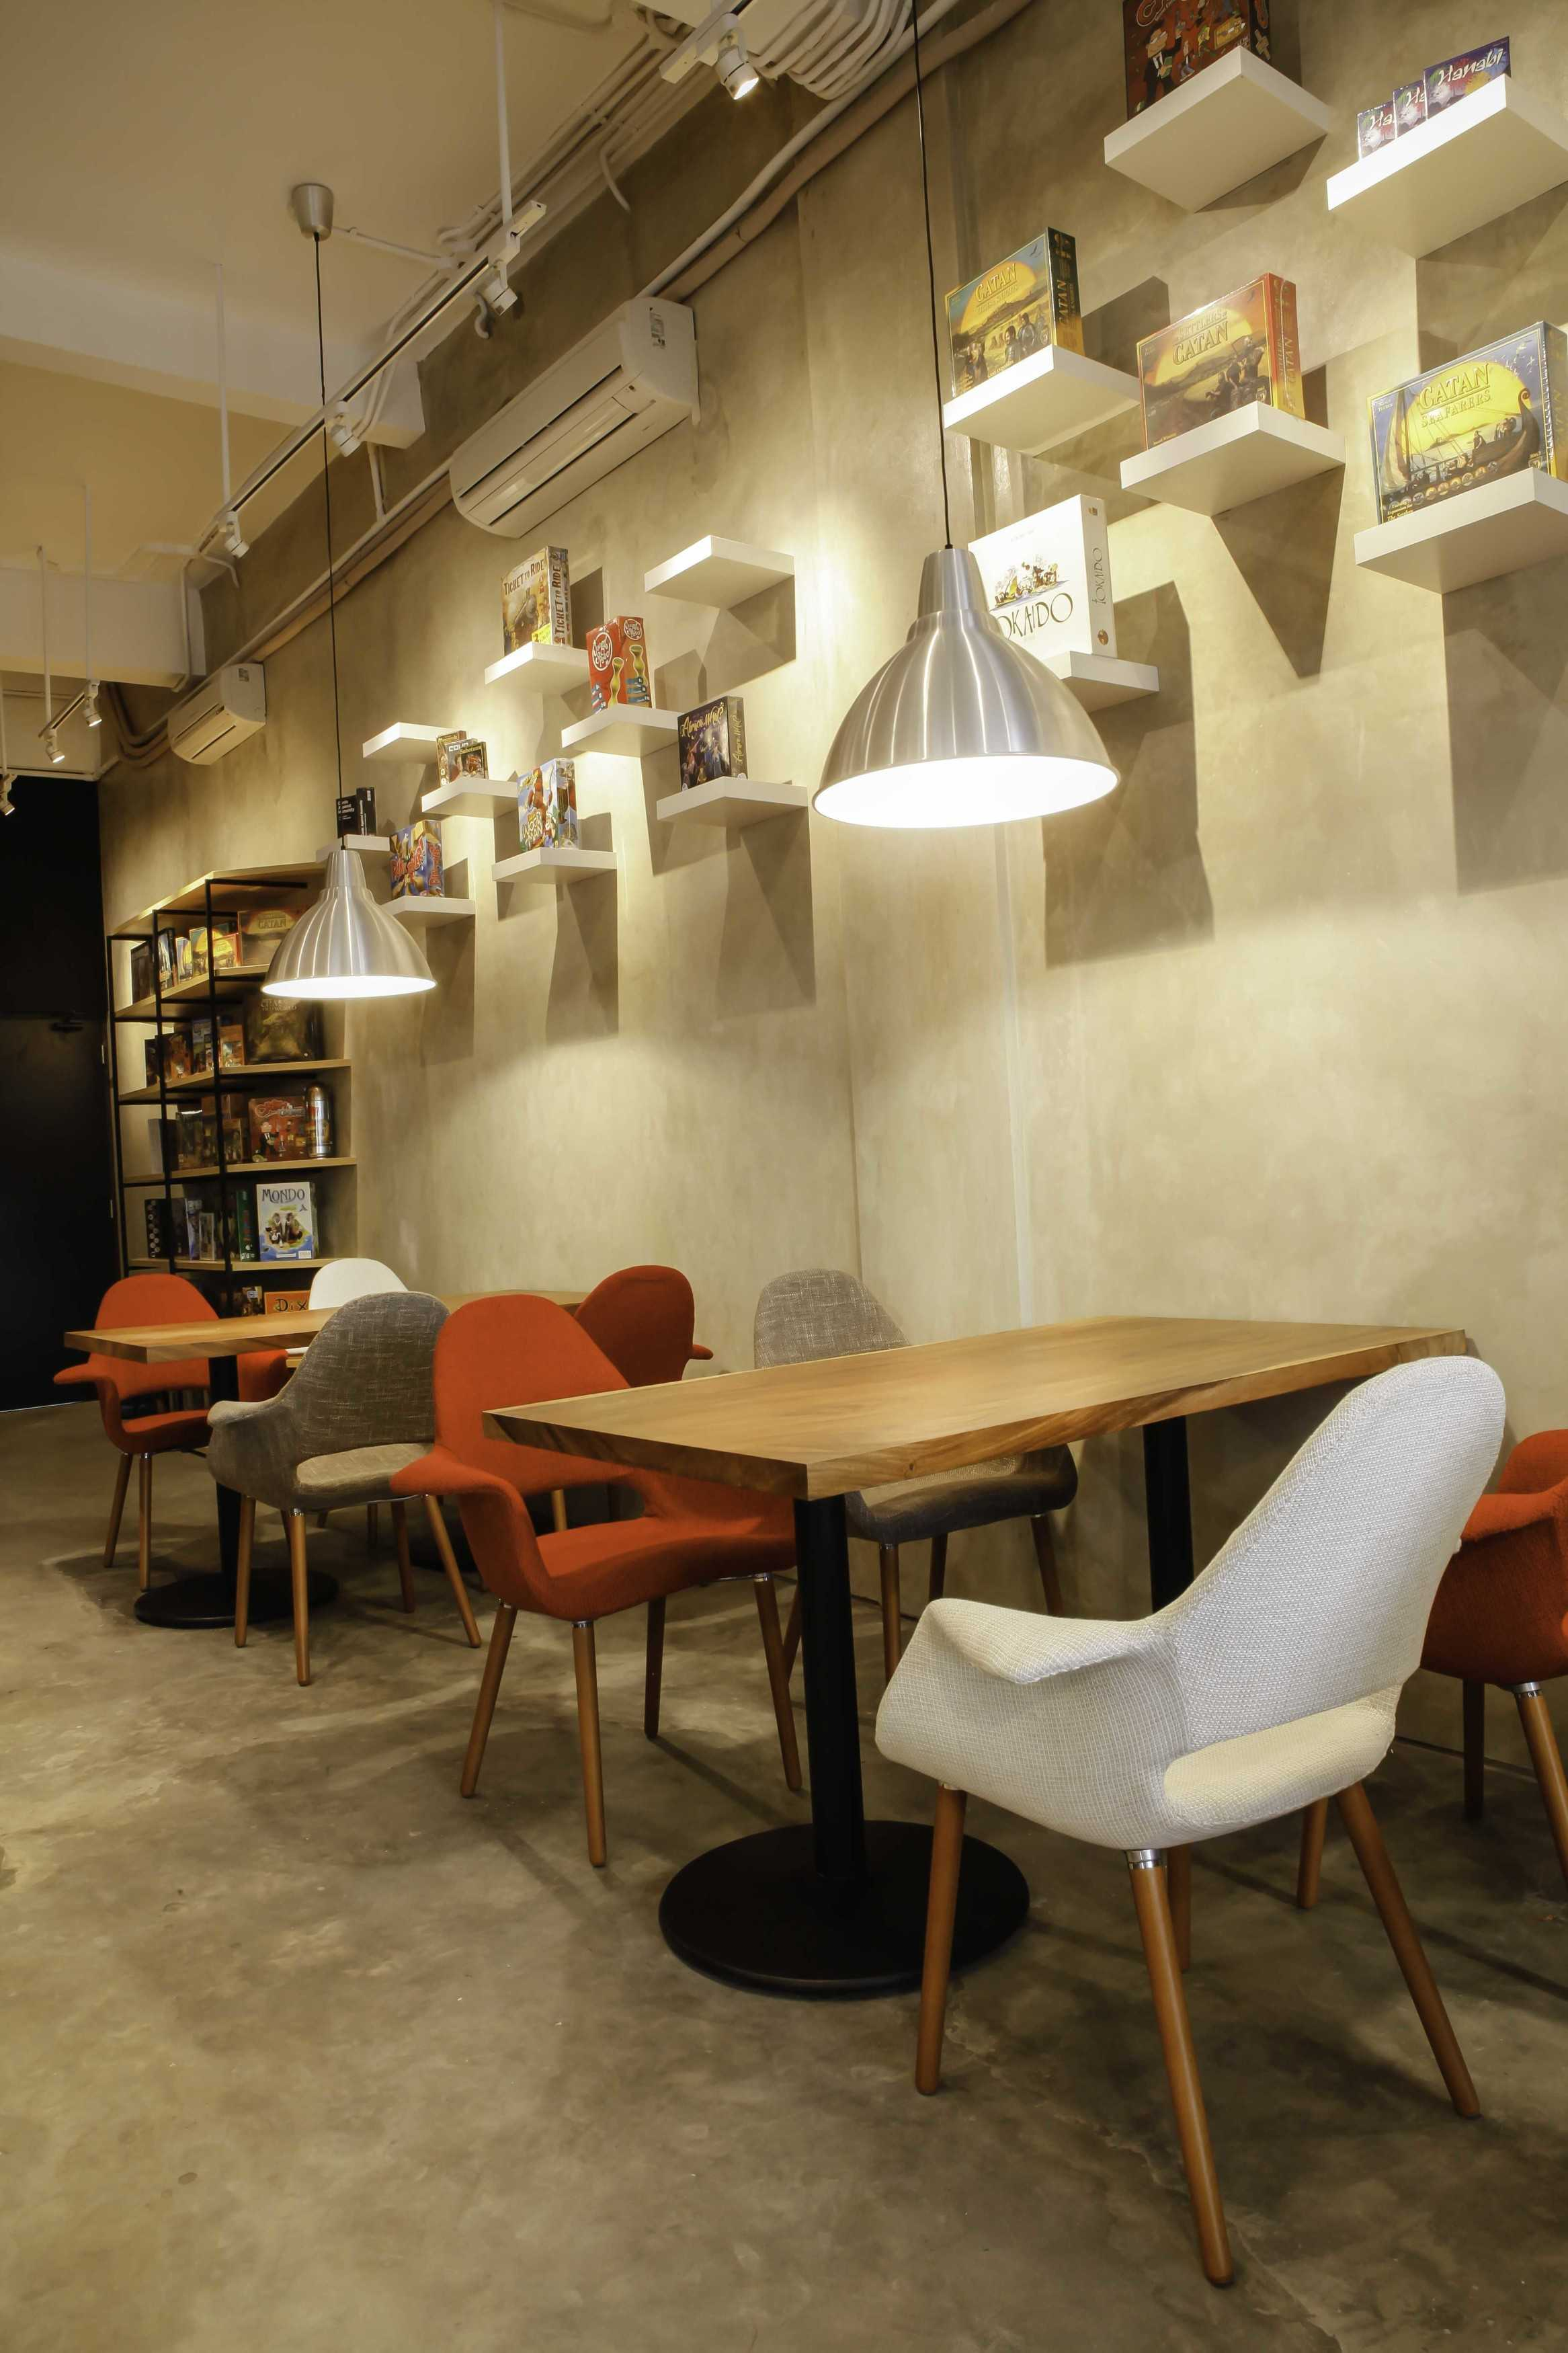 Design Intervention The Bunker Gading Serpong Gading Serpong Seating Area   16718